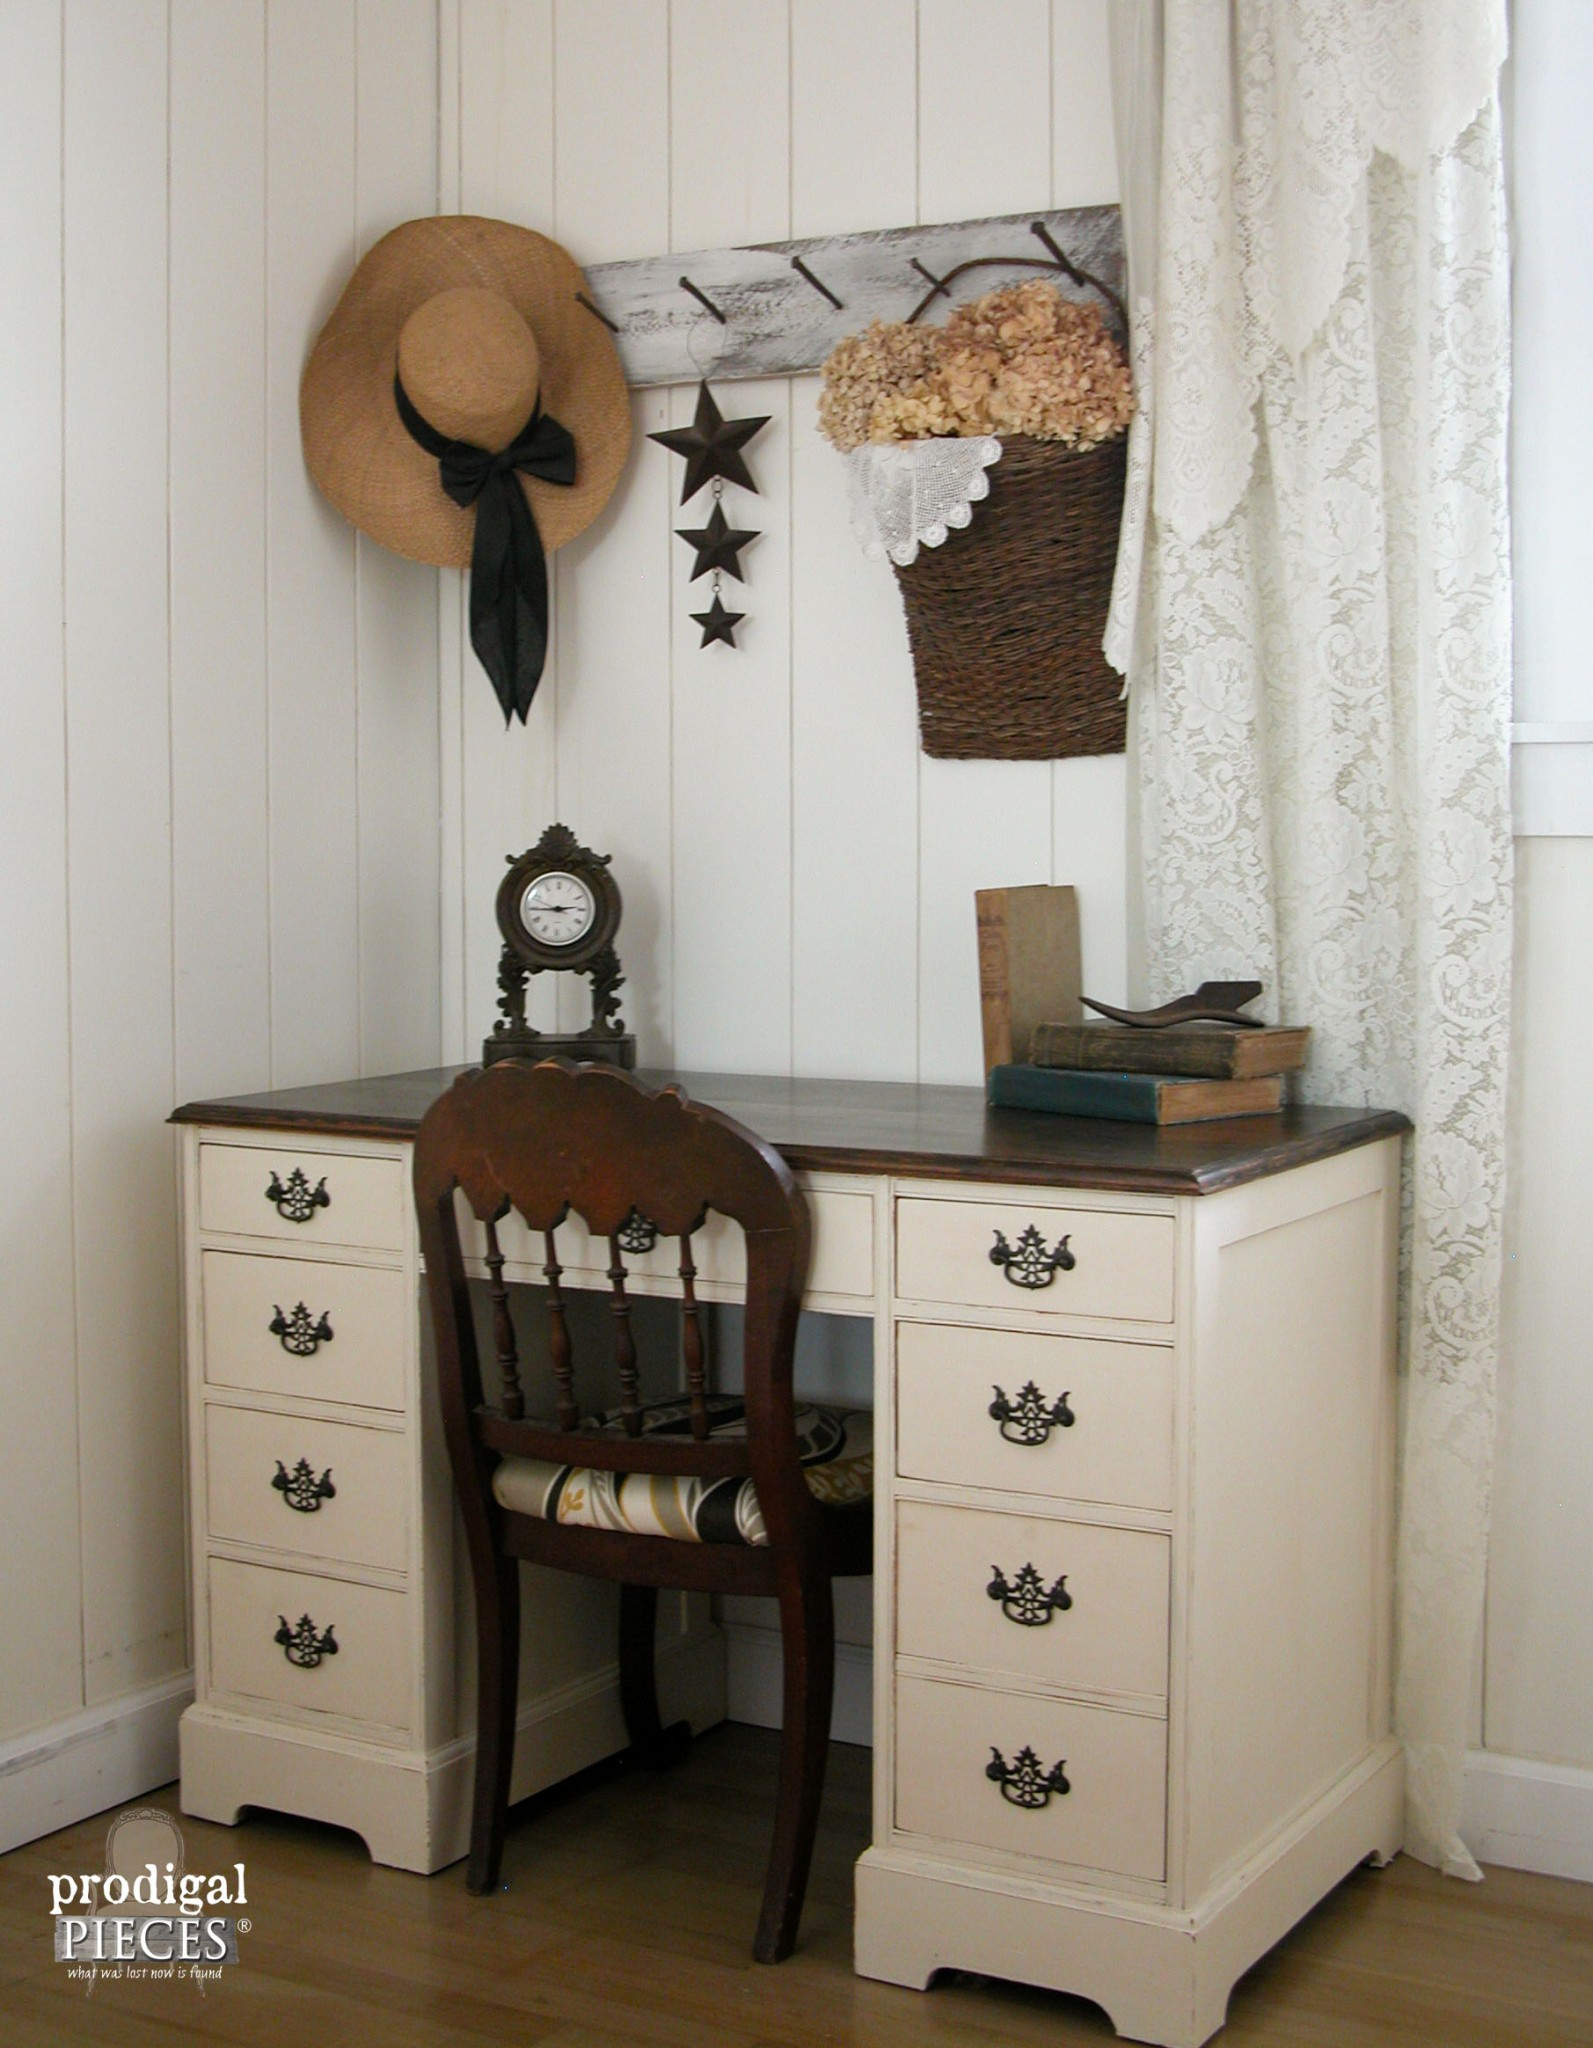 Vintage Desk Restored by Teen Boy Featured by Prodigal Pieces | www.prodigalpieces.com